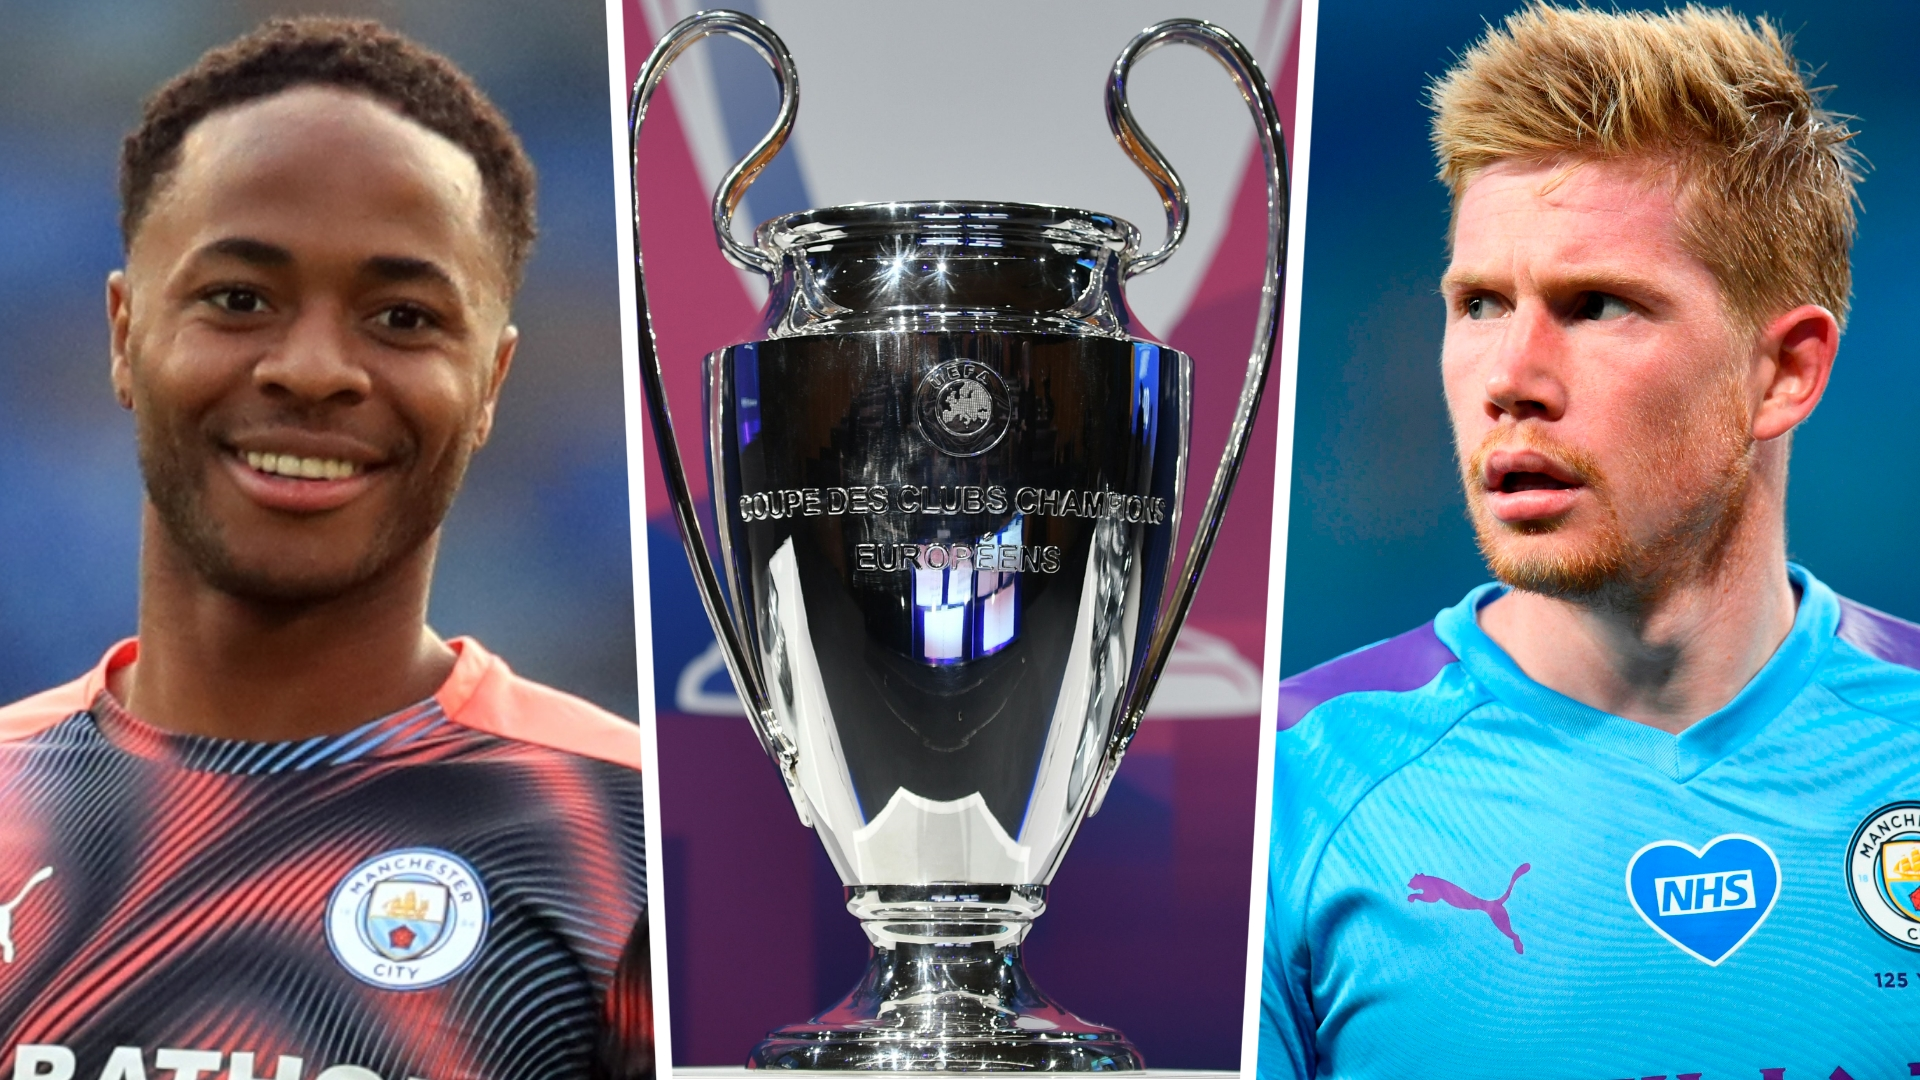 Manchester City to play in Champions League next season after 2-year UEFA ban lifted on appeal